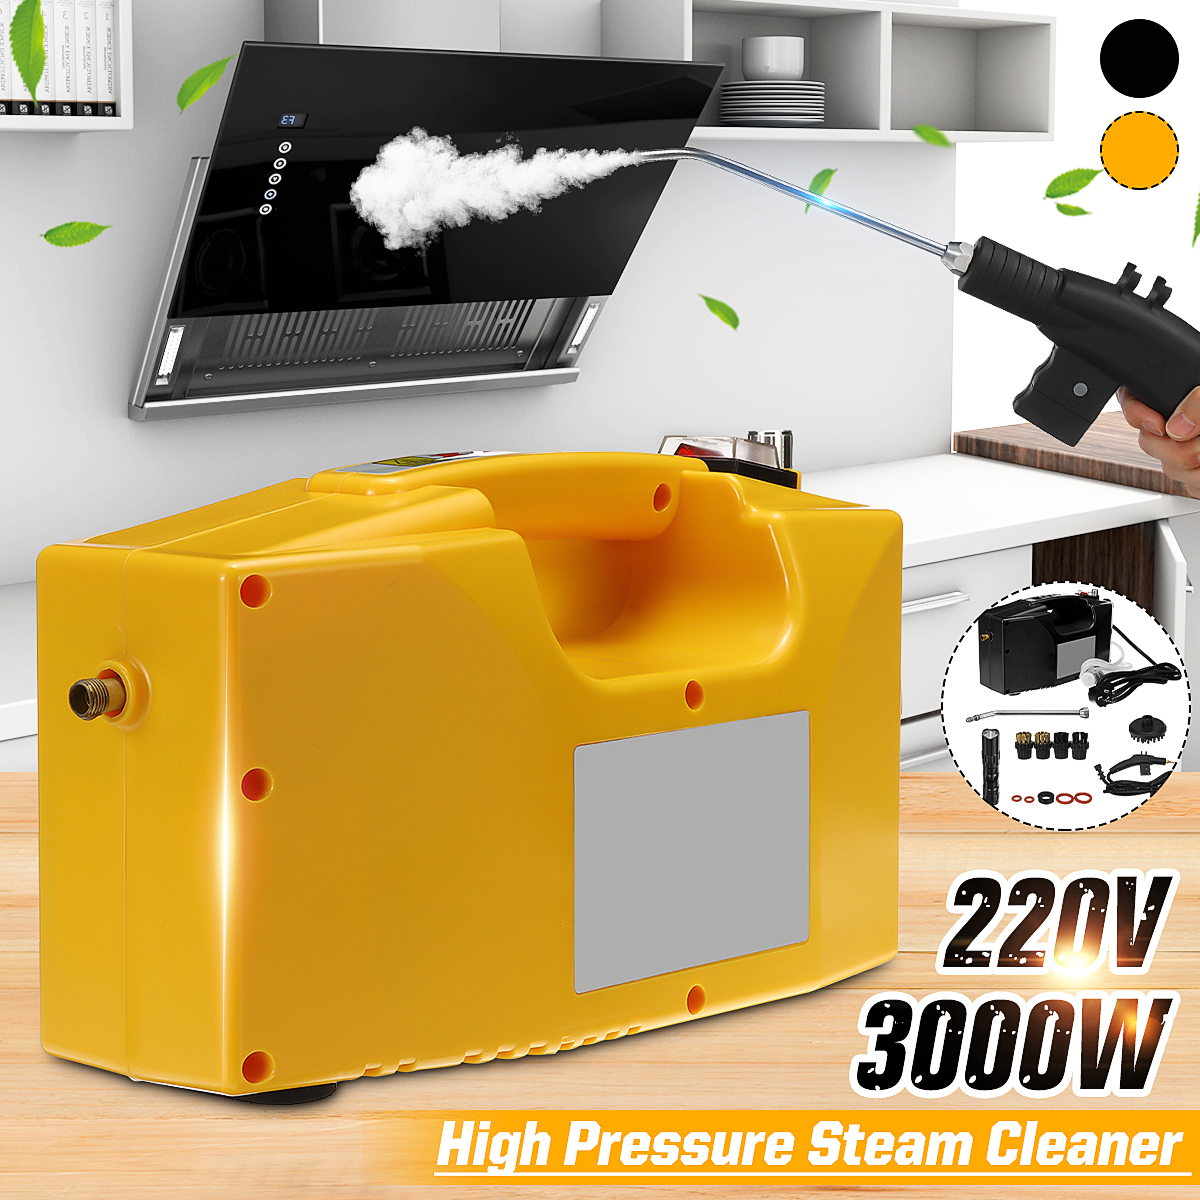 220V 3000W High Pressure Temperature Steam Cleaner Handheld Kitchen Cleaning Machine Automatic Pumping Sterilization Disinfector